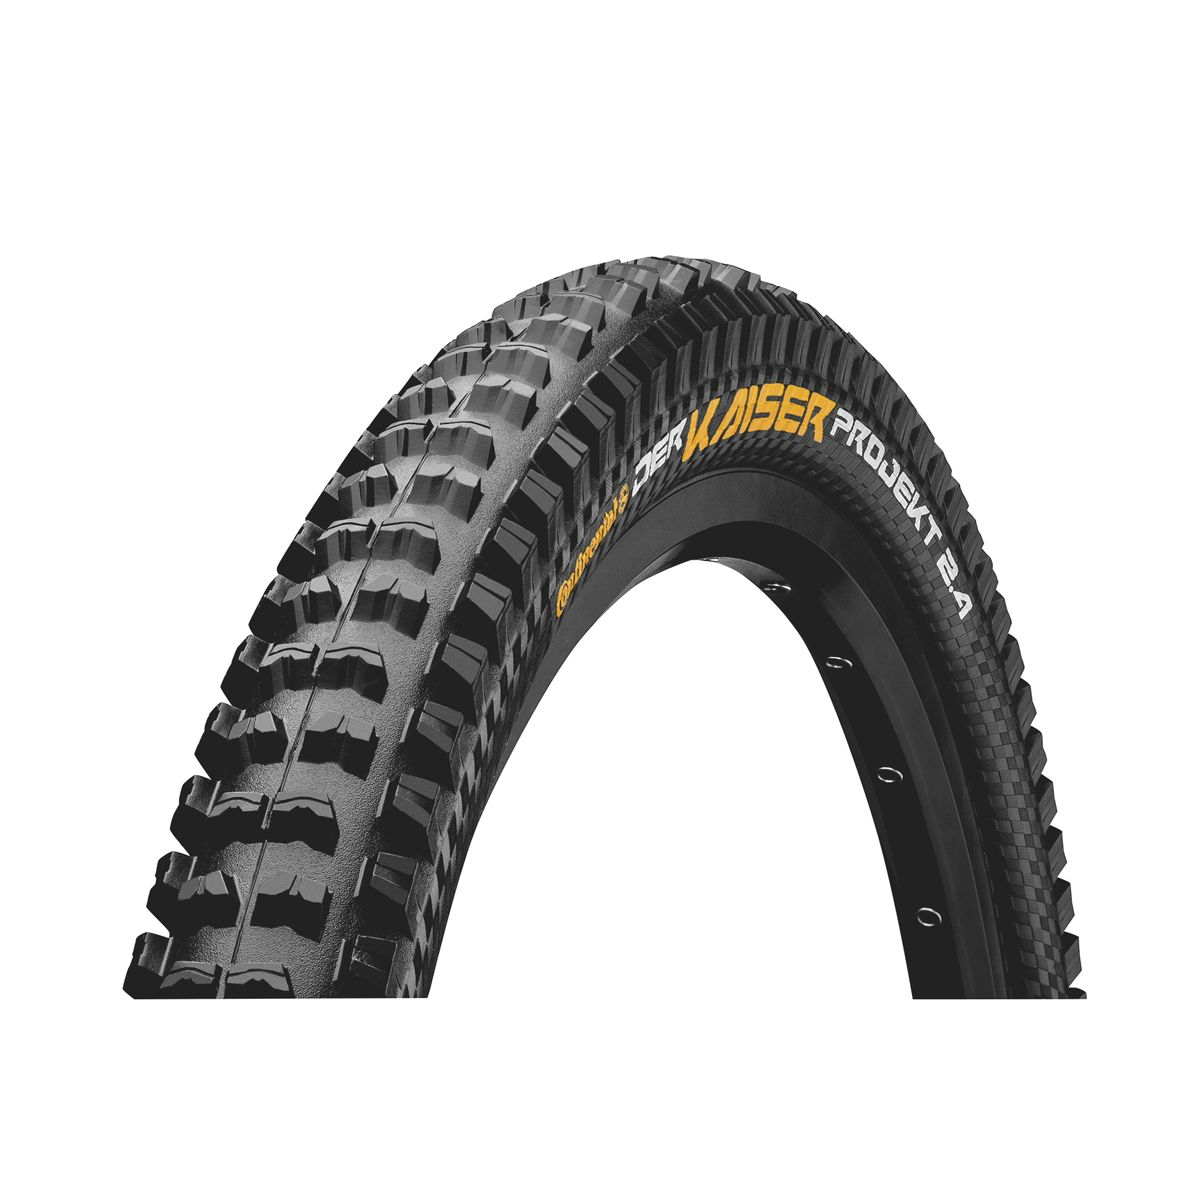 Continental Der Kaiser Projekt 2.4 ProTection Apex MTB tyre | Tyres